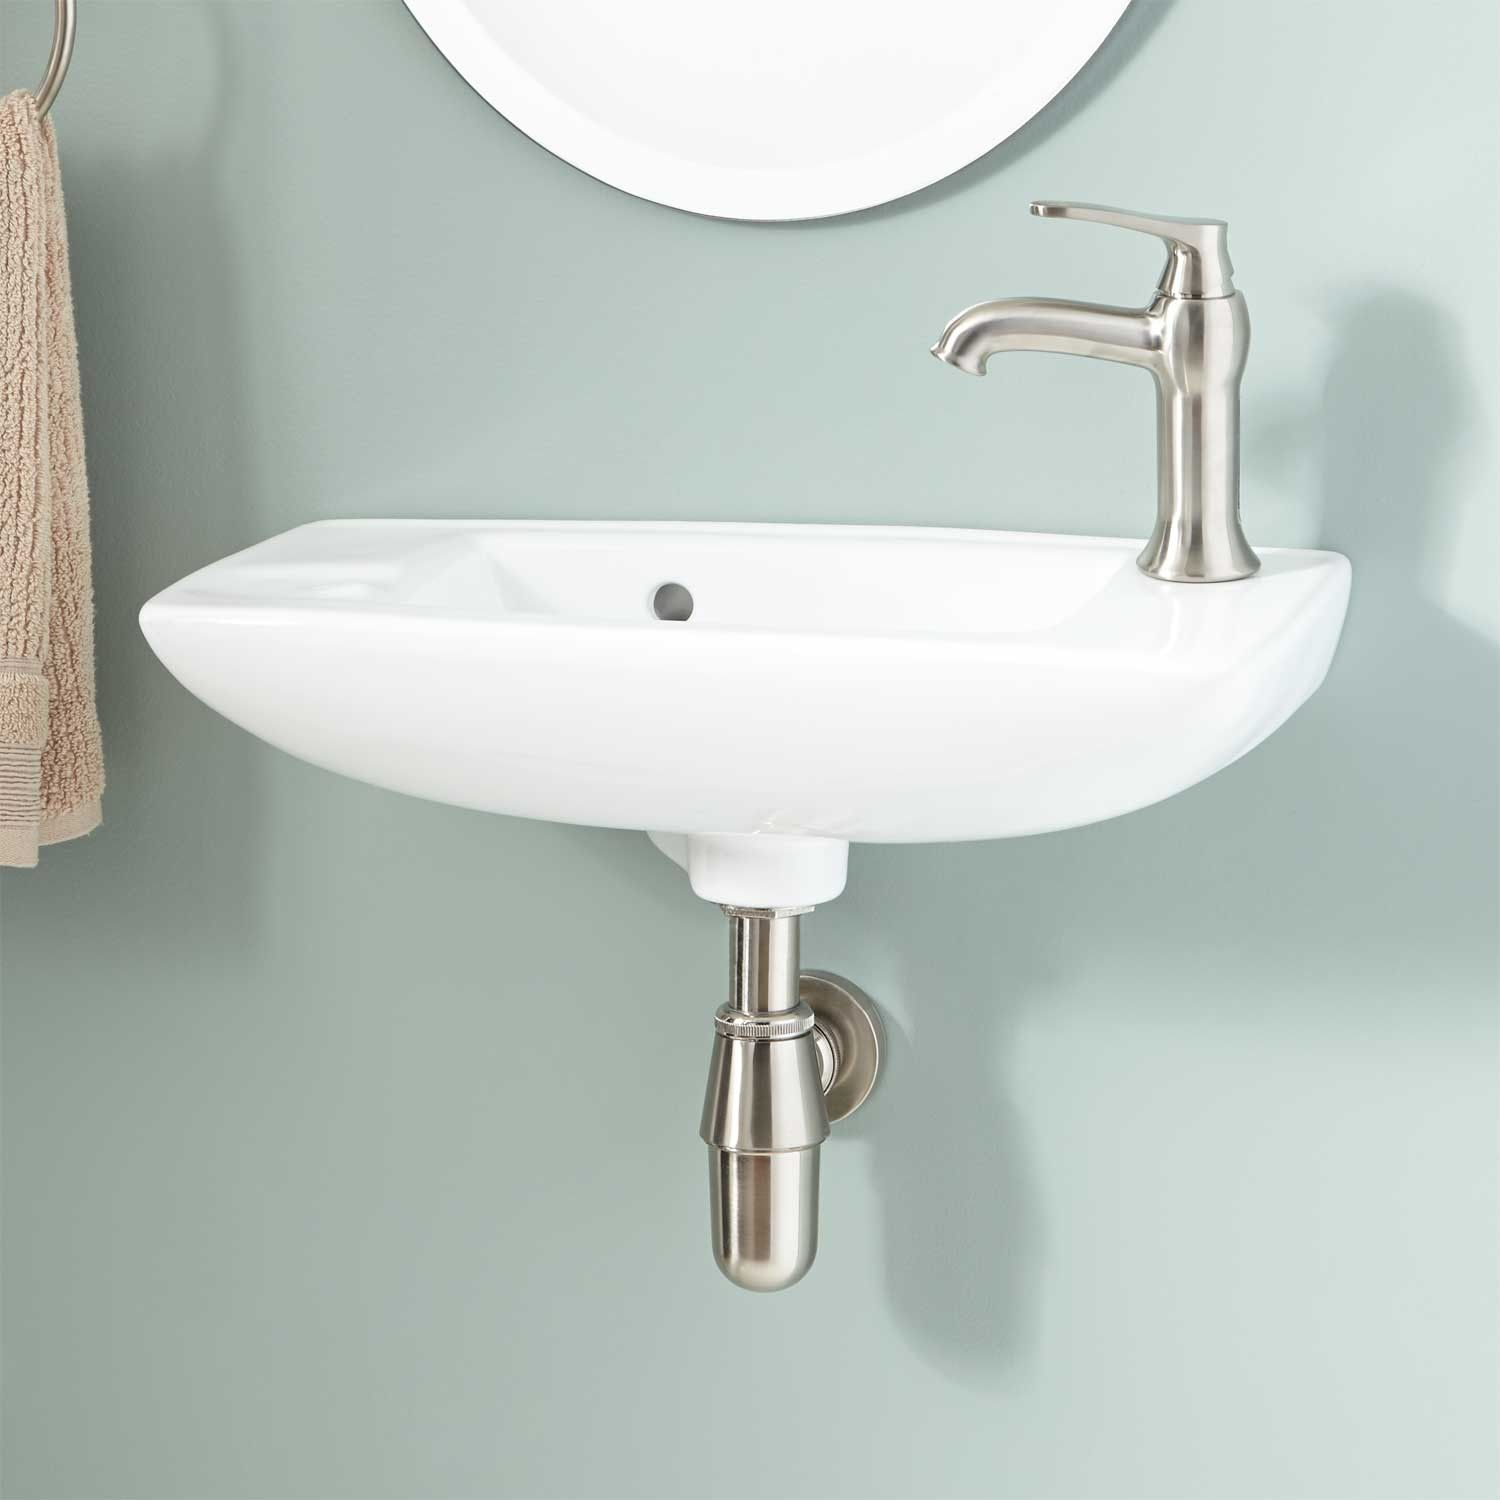 Belvidere Porcelain Wall-Mount Bathroom Sink | Wall mount, Wall ...